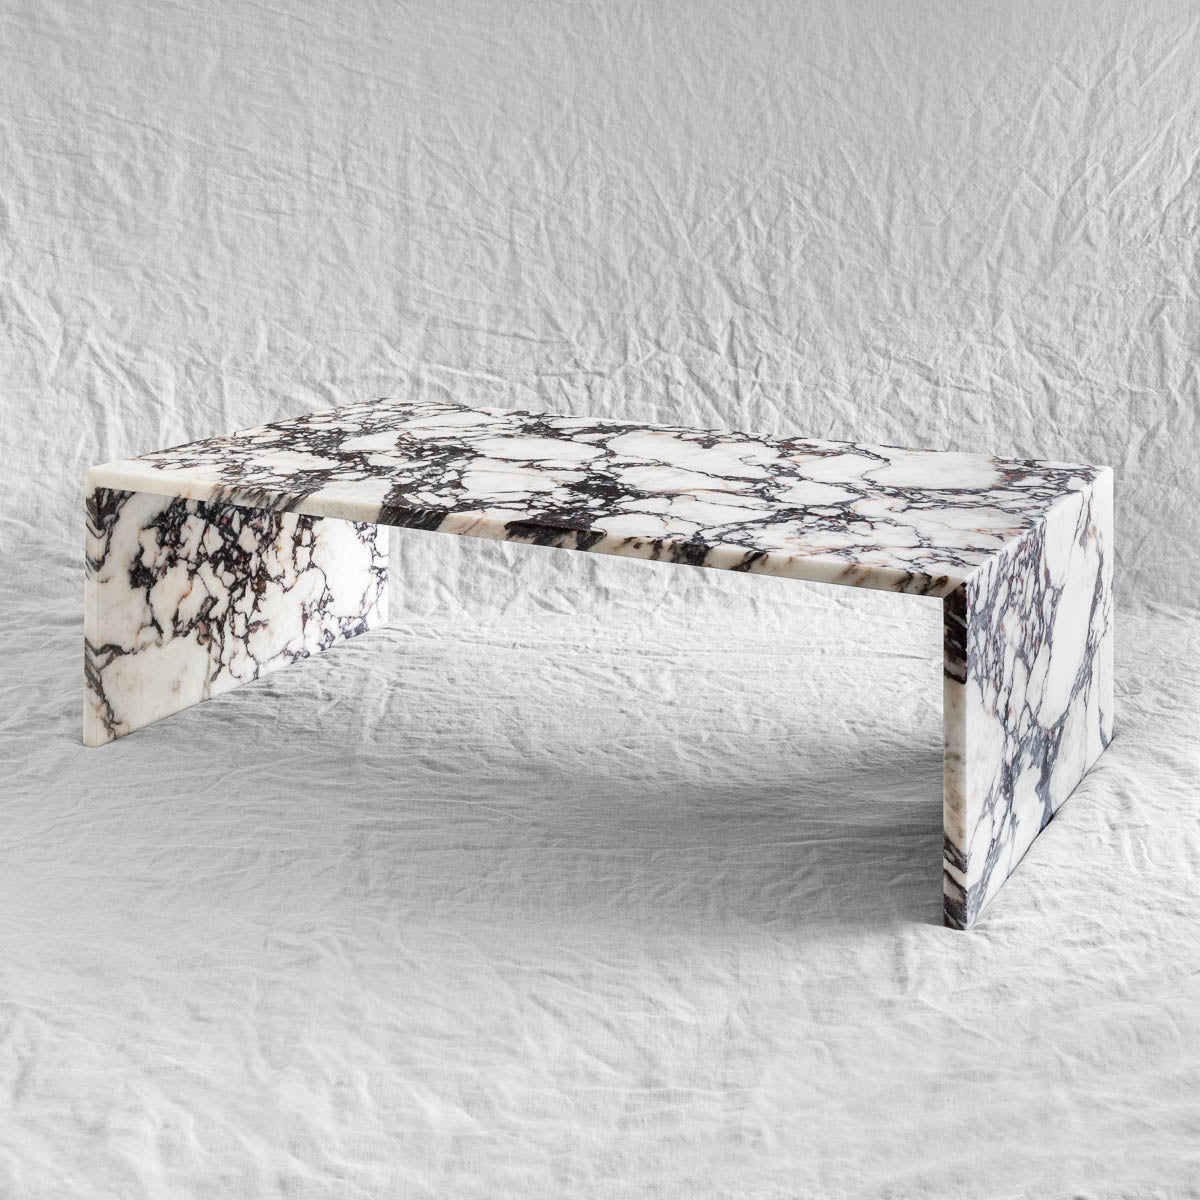 Just Adele | Viola Calacatta coffee table | Marble & stone | Furniture design | Custom | Bespoke | Melbourne made | Bespoke | Marble coffee table | Calacatta coffee table | Melbourne coffee table | Melbourne design | Furniture design melbourne